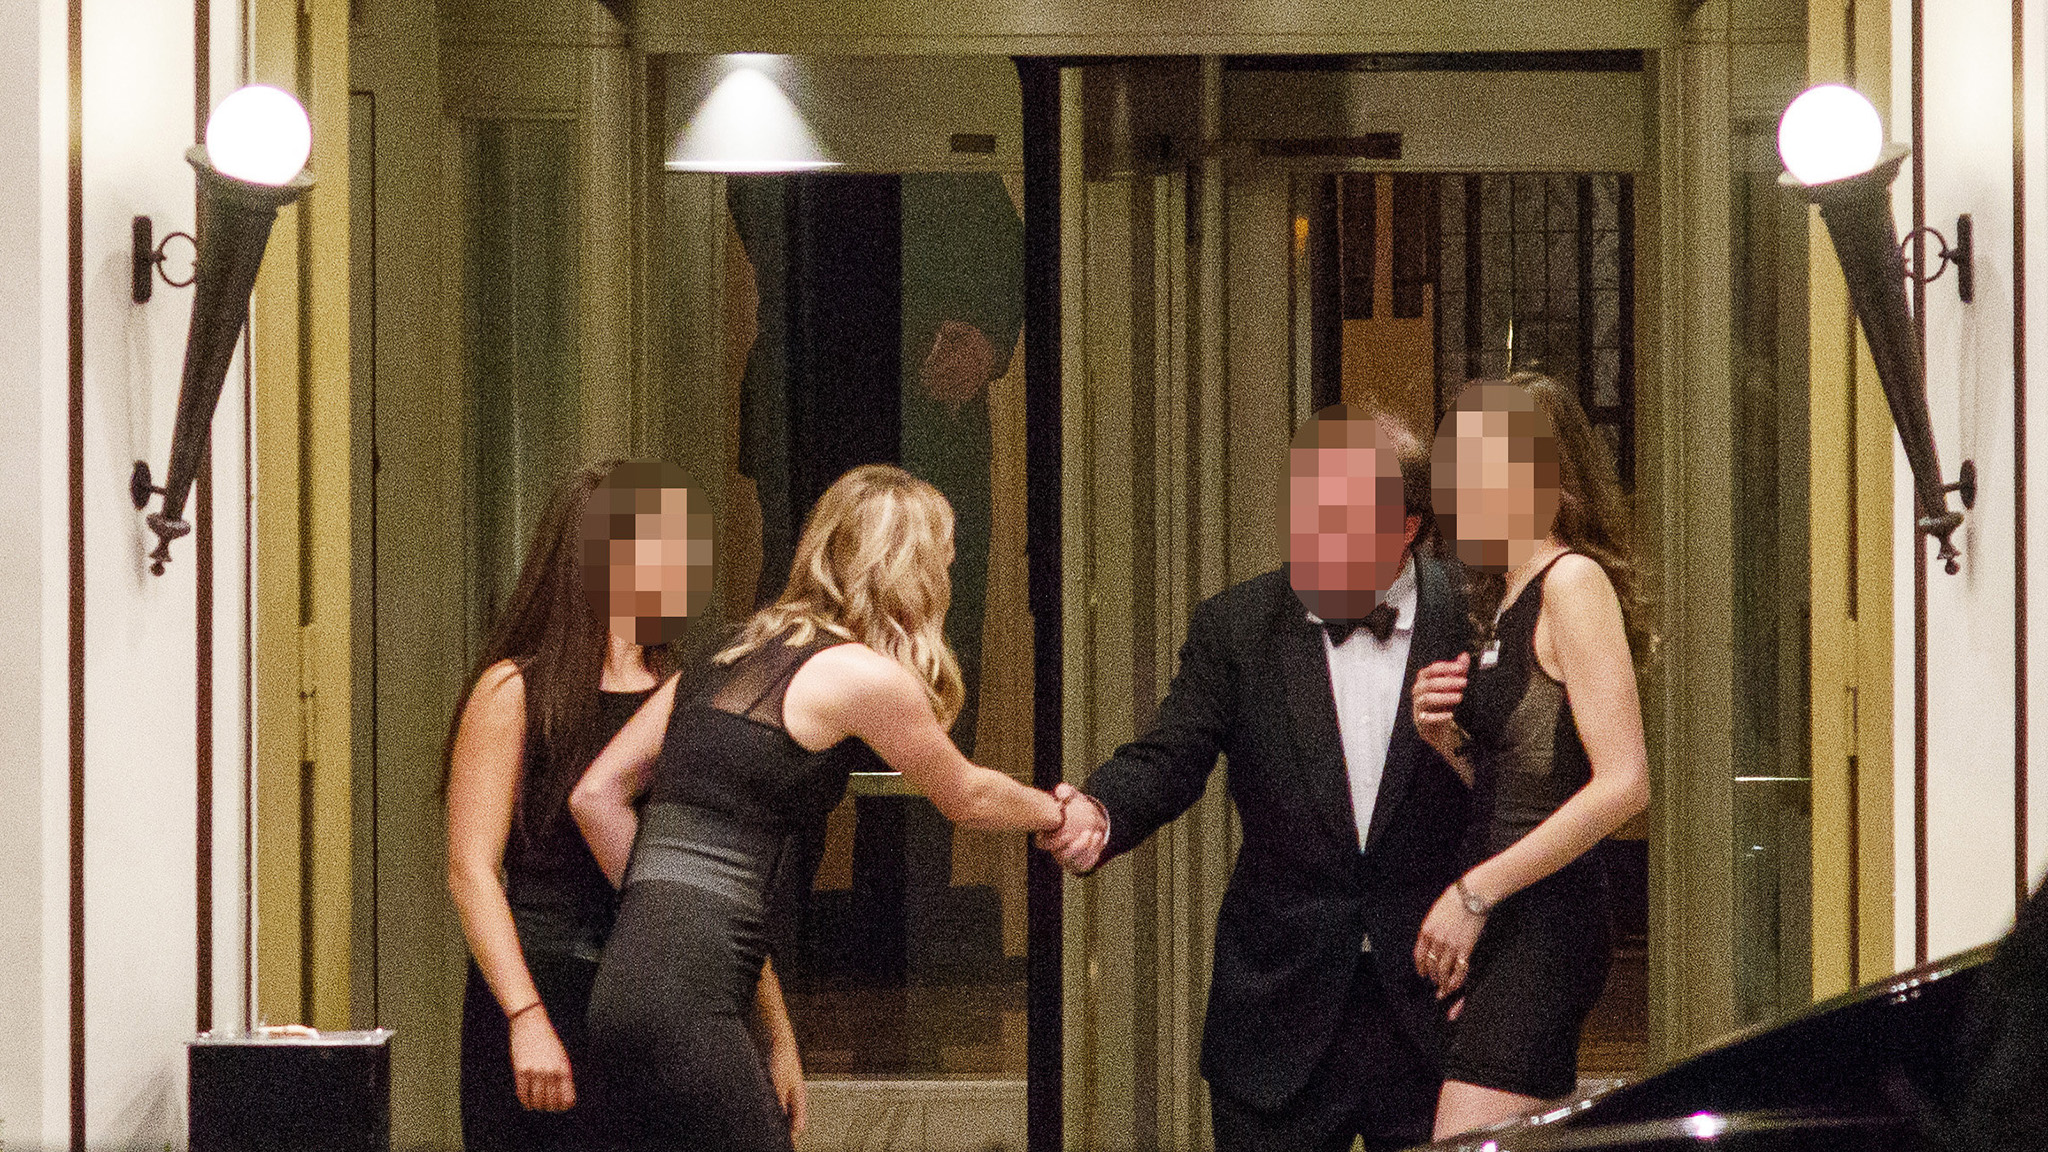 Presidents Club to close after sexual harassment exposé